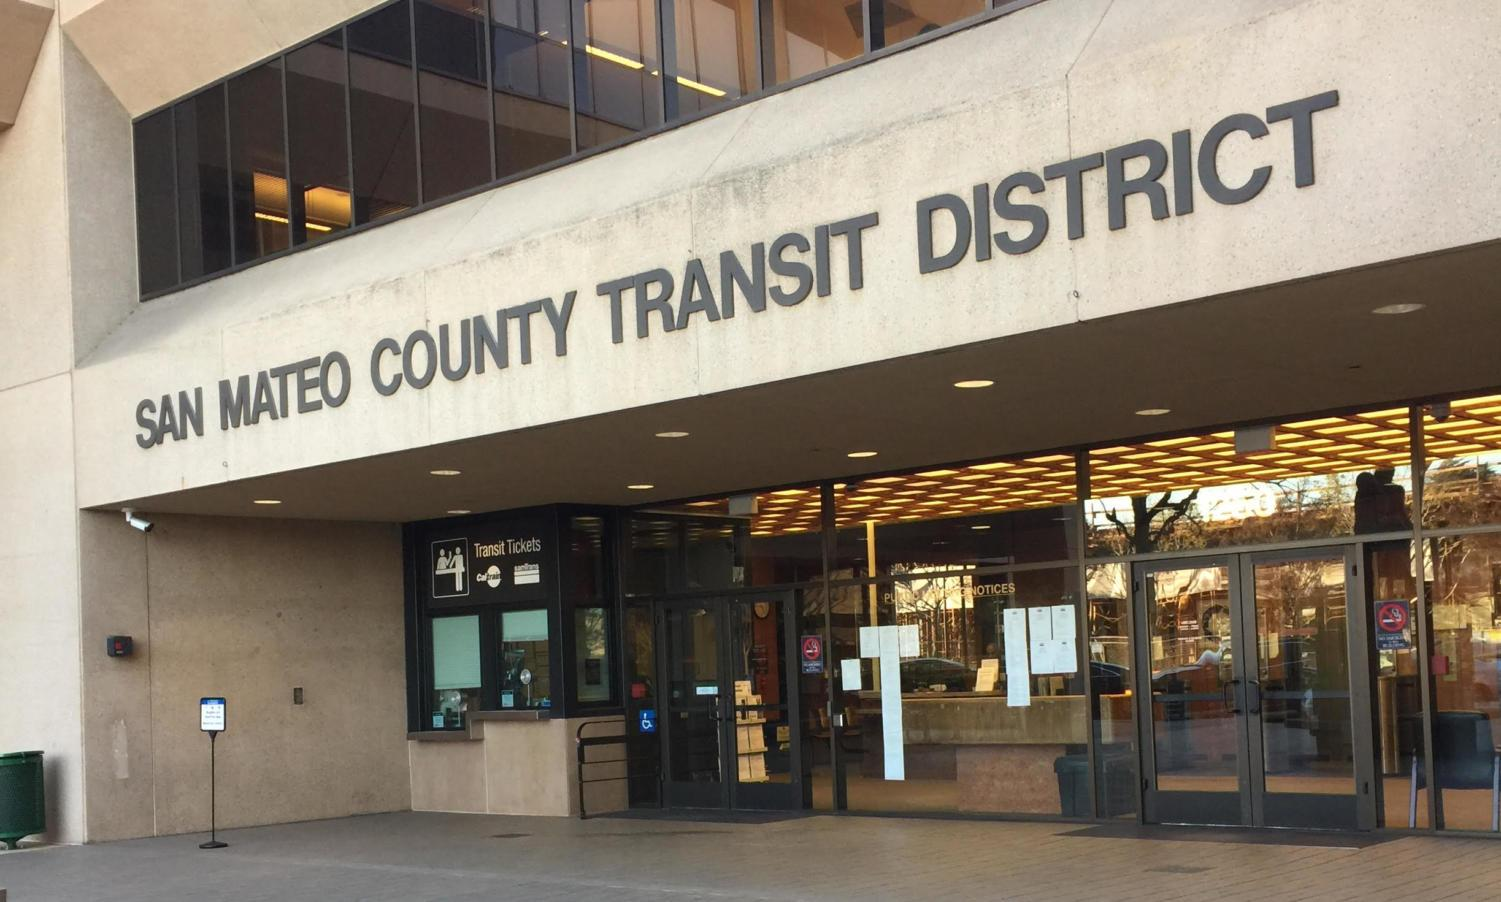 The San Mateo County District has been the main source of solutions to transit issues for over 40 years.